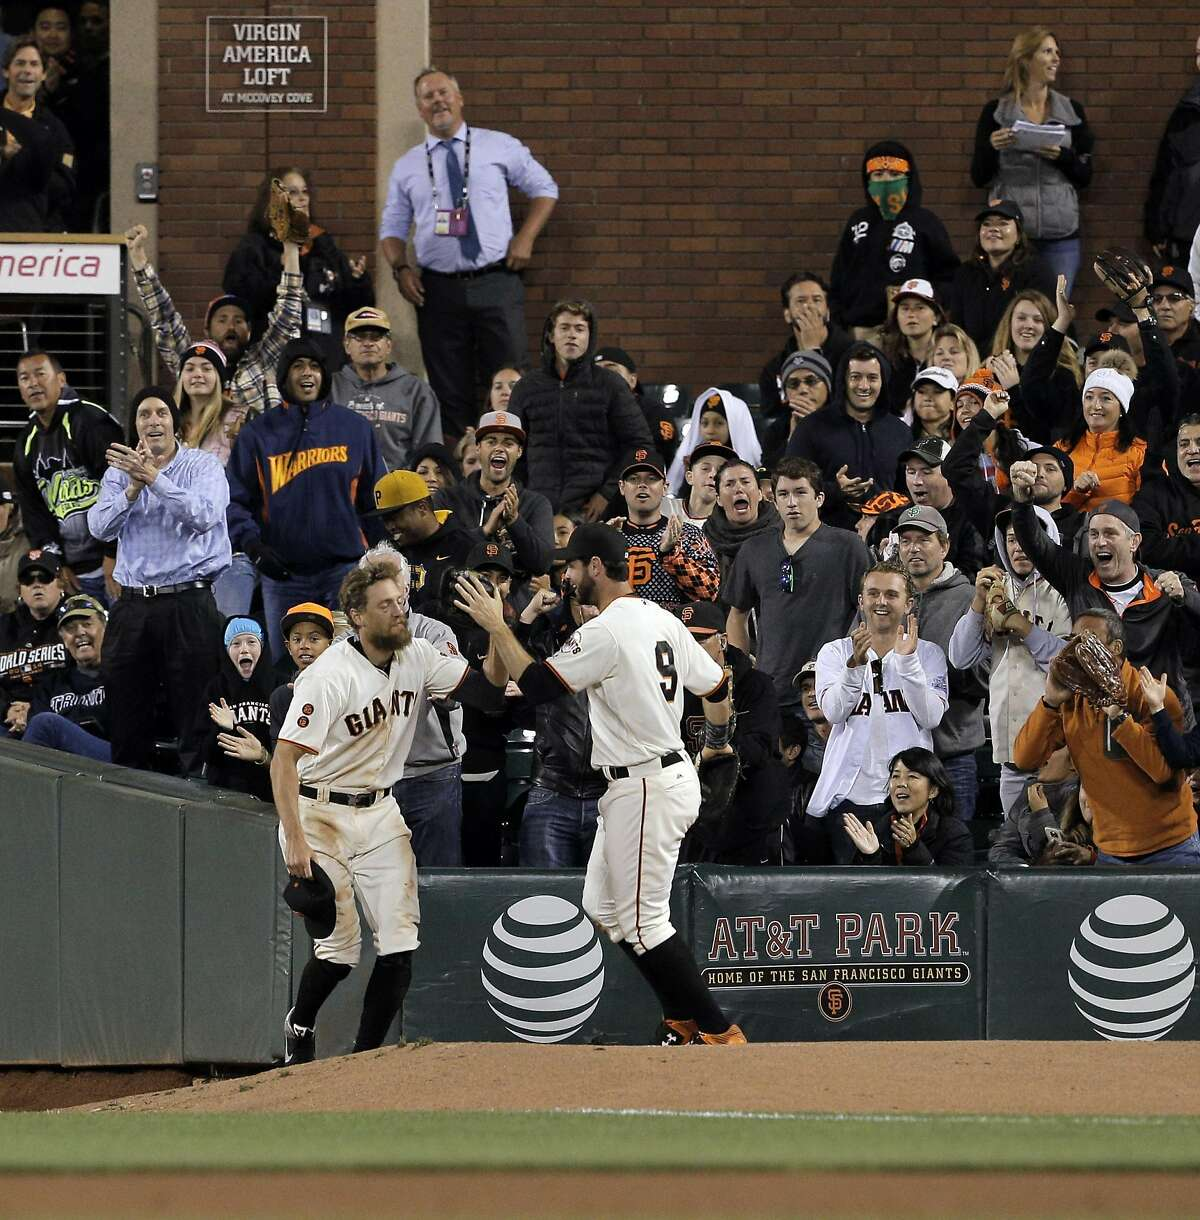 Giants fans react to a catch by Hunter Pence in foul territory in the fourth inning as the San Francisco Giants played the Pittsburgh Pirates at AT&T Park in San Francisco, Calif., on Monday, August 15, 2016.